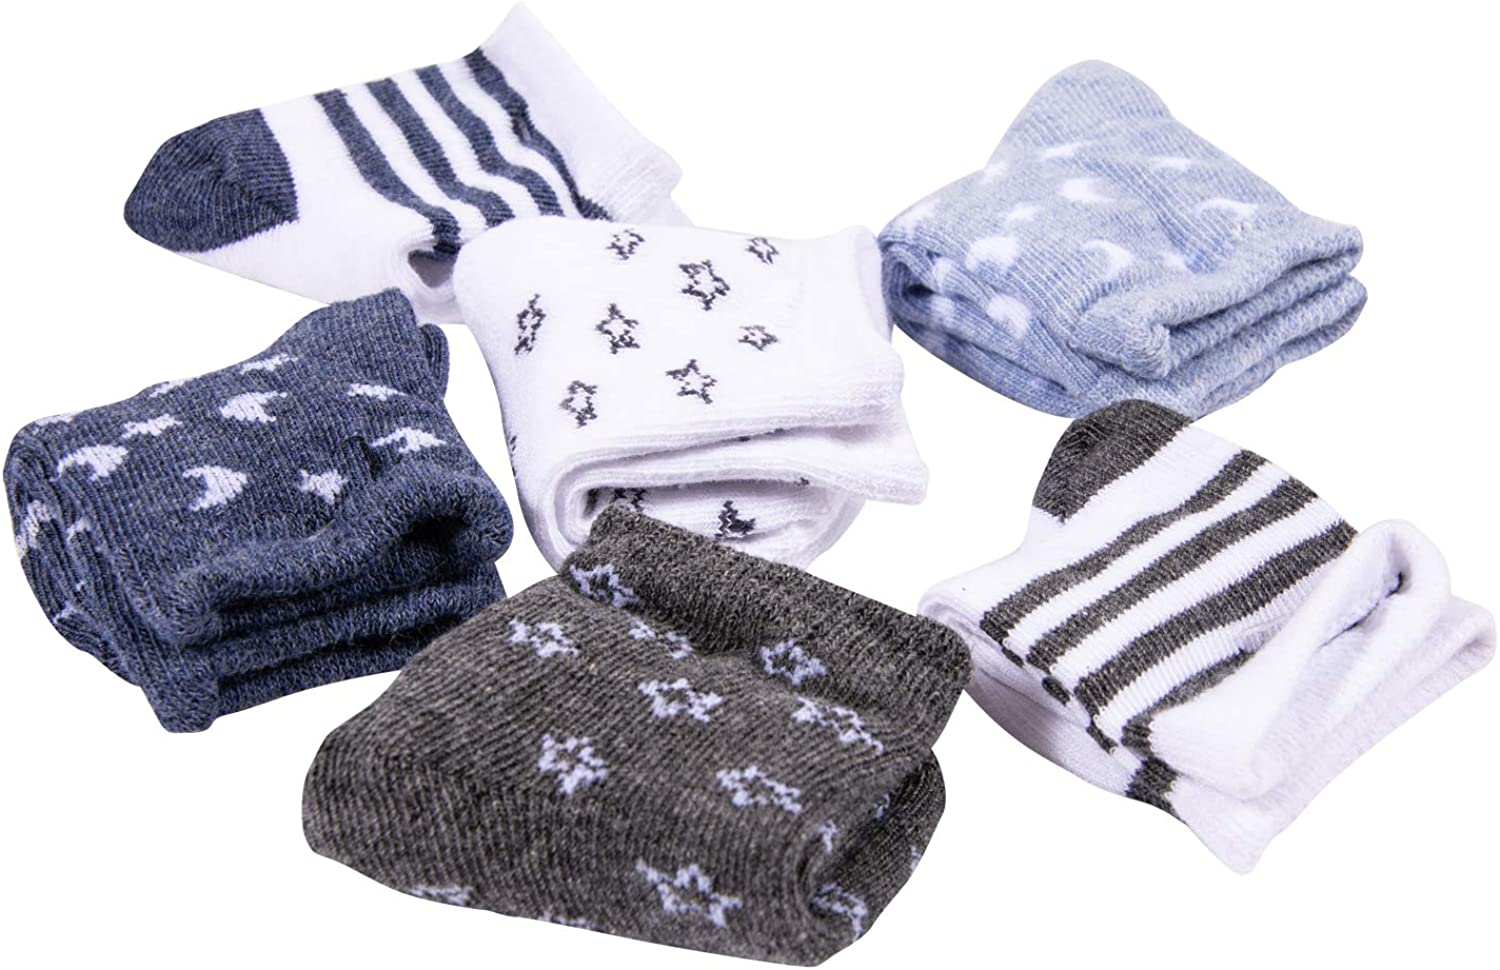 aden anais Infant Boys Socks 6 Pairs of Combed Cotton Rich Crew Socks With Silicone Grippers Luna, 0M-6M